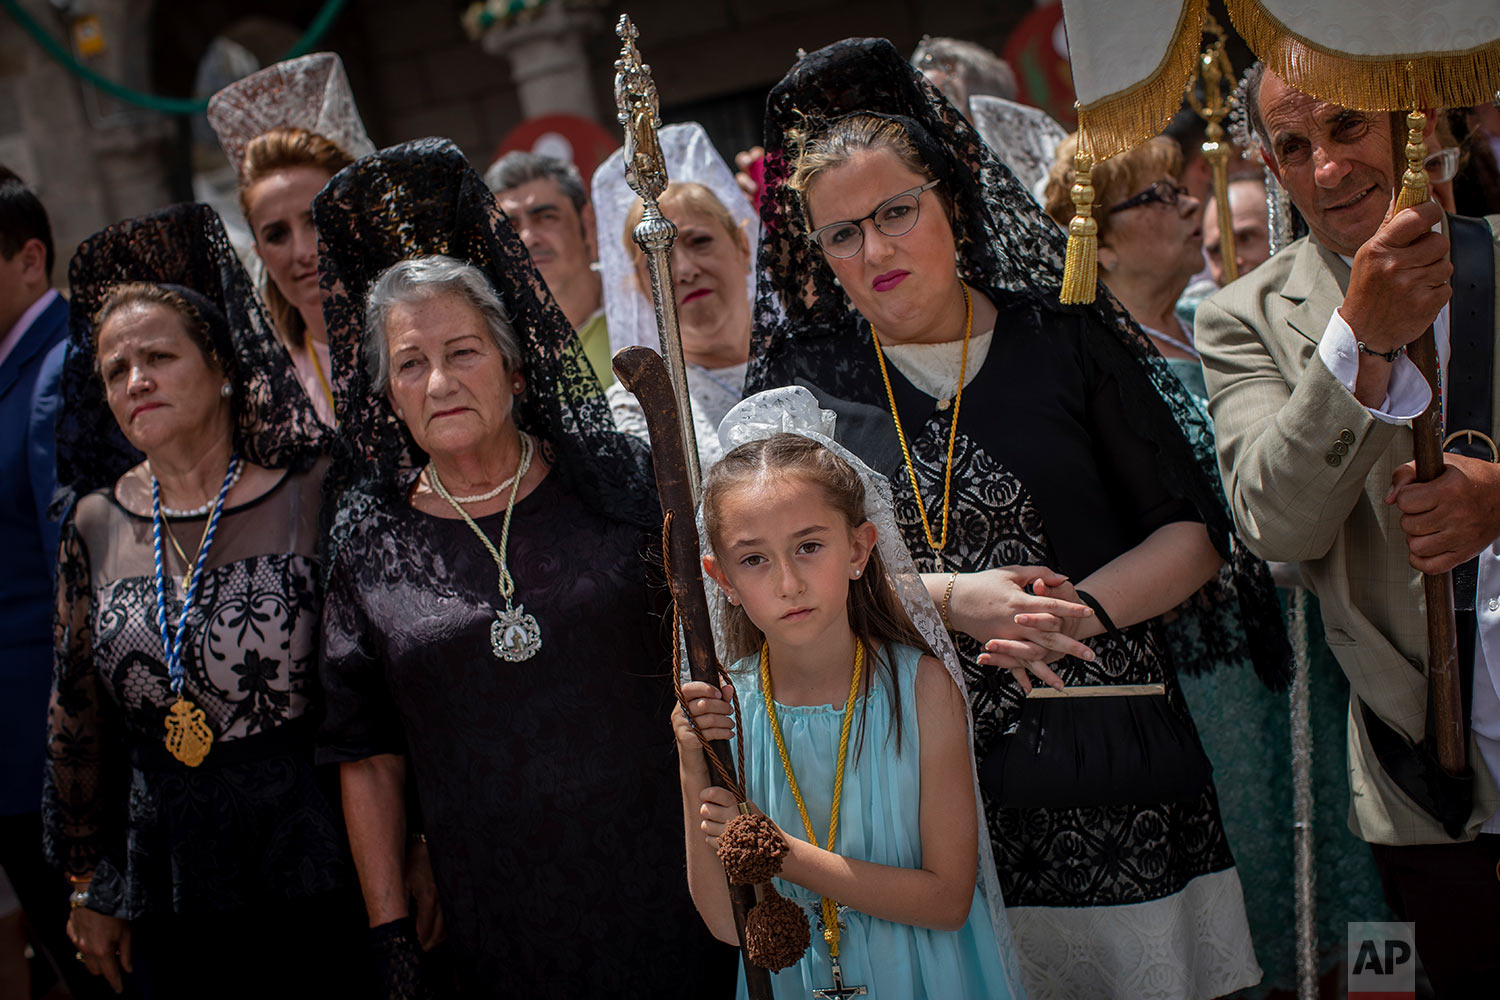 Catholic worshippers take part during the Corpus Christi procession in the village of Bejar, Spain, Sunday, June 23, 2019. (AP Photo/Bernat Armangue)